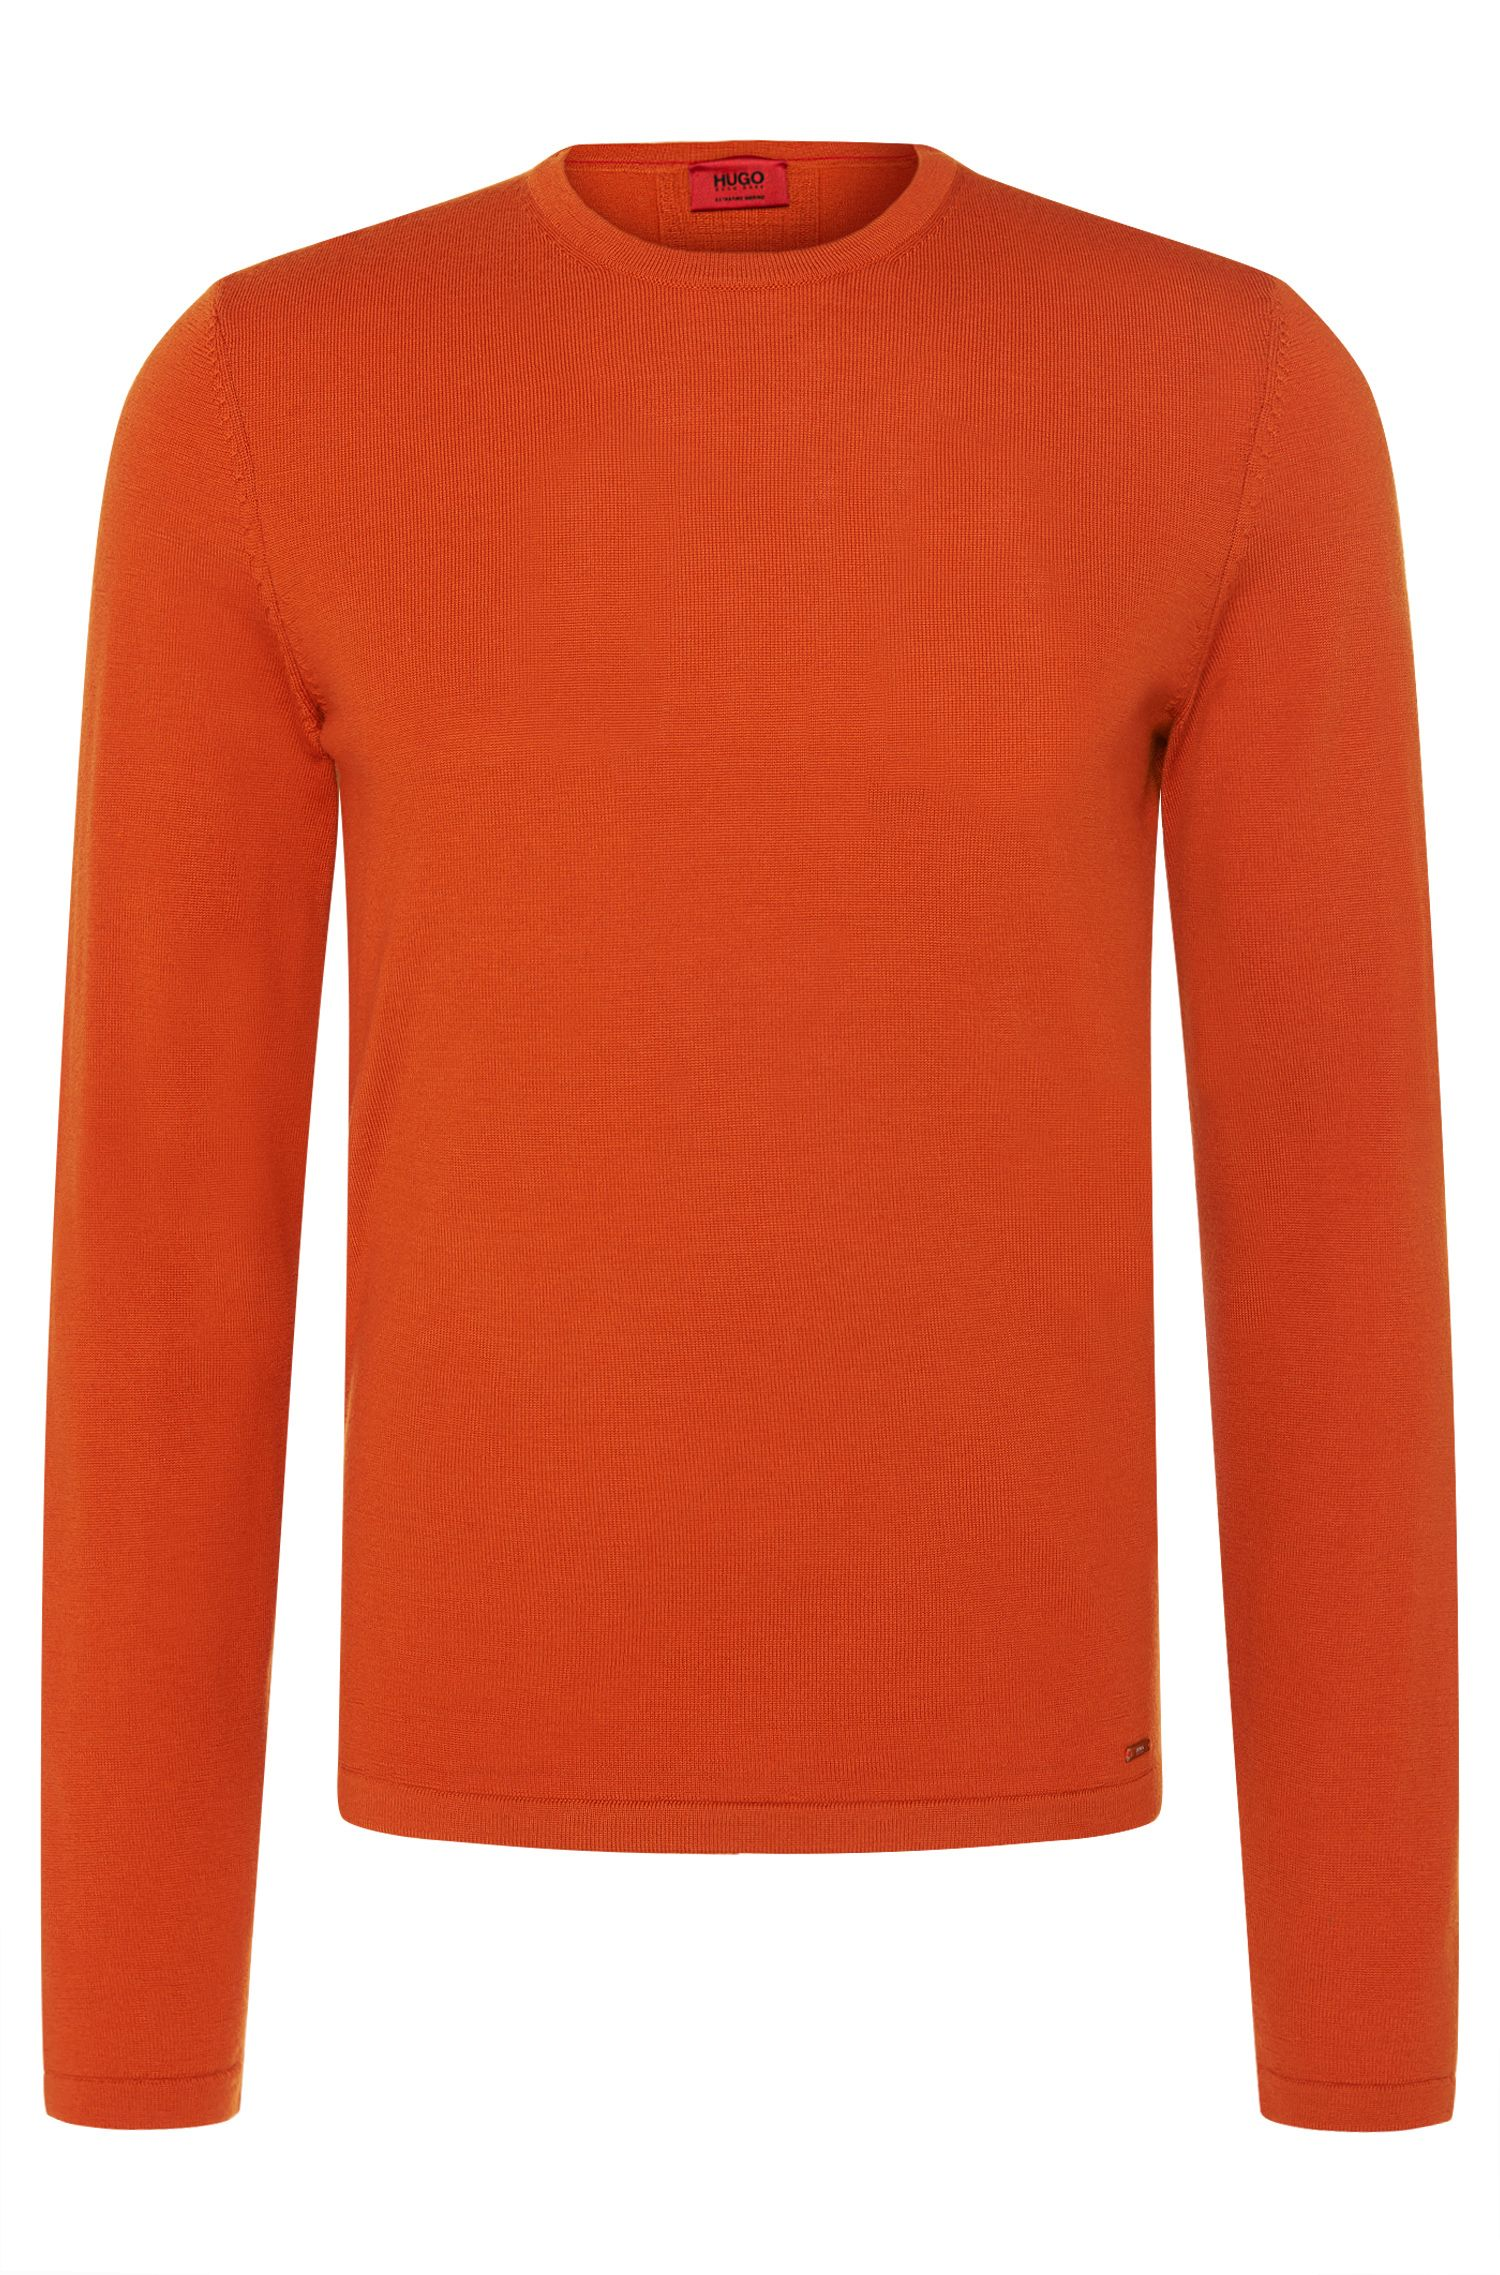 'San Paolo' | Merino Virgin Wool Sweater